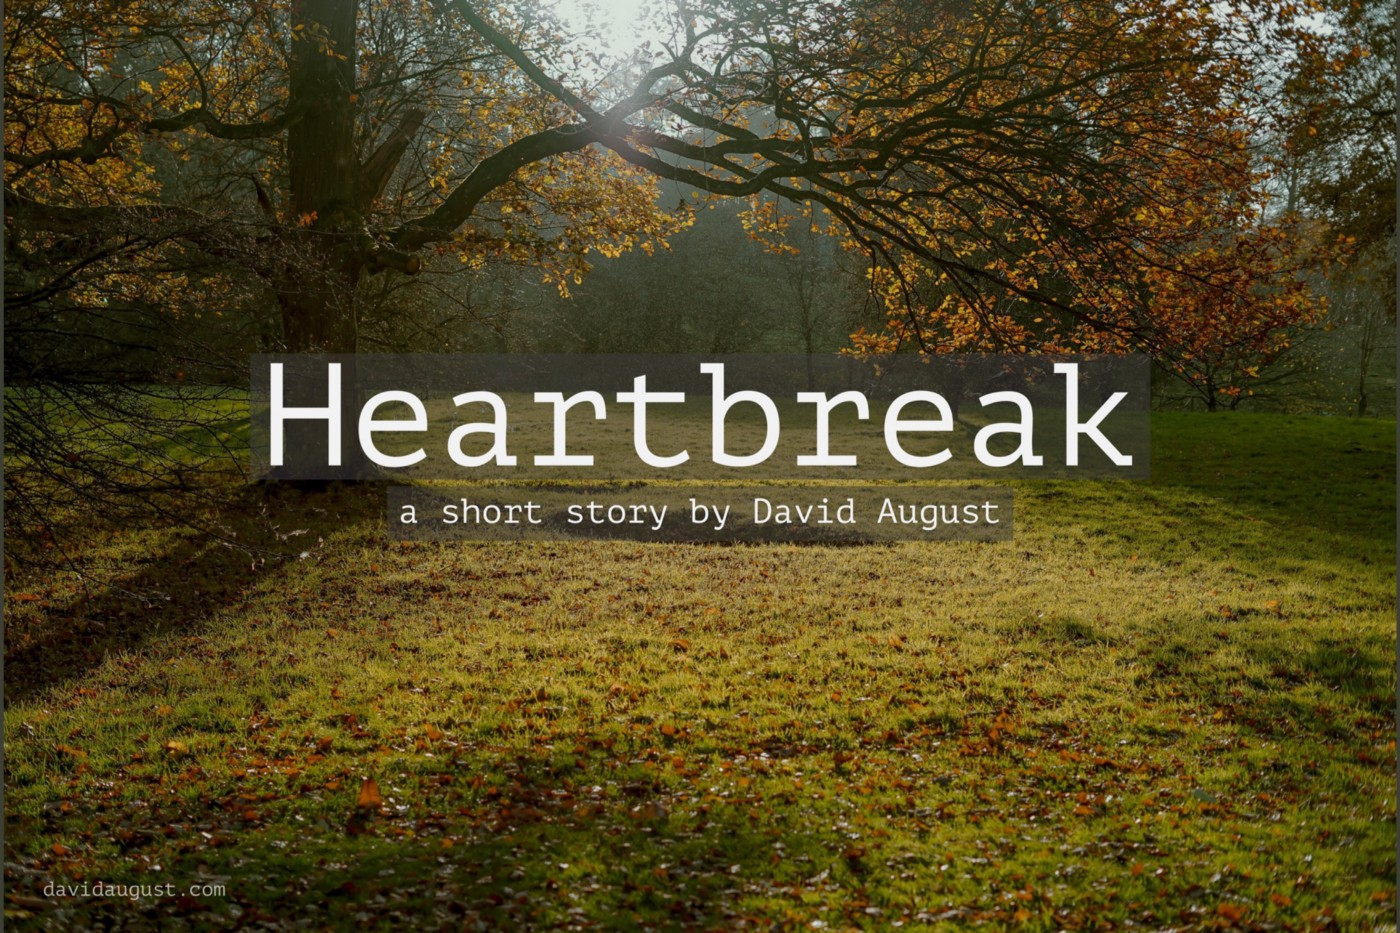 cover image for the story Heartbreak by David August - a tree in a field surrounded by trees